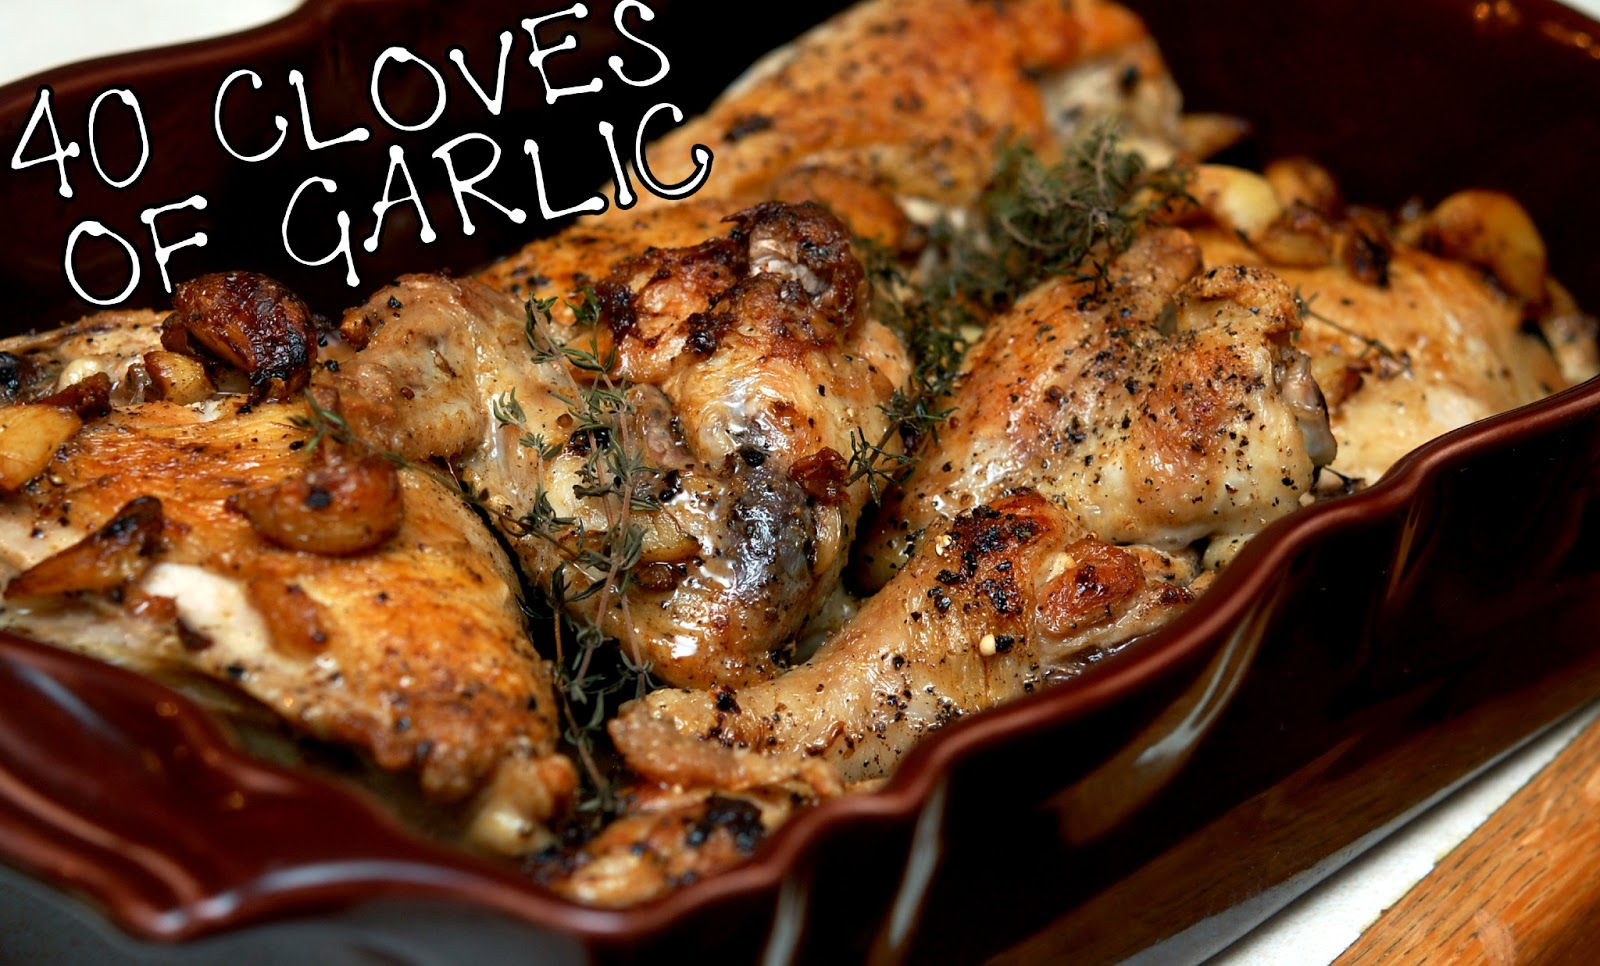 CHICKEN WITH 40 CLOVES OF GARLIC - Hugs and Cookies XOXO